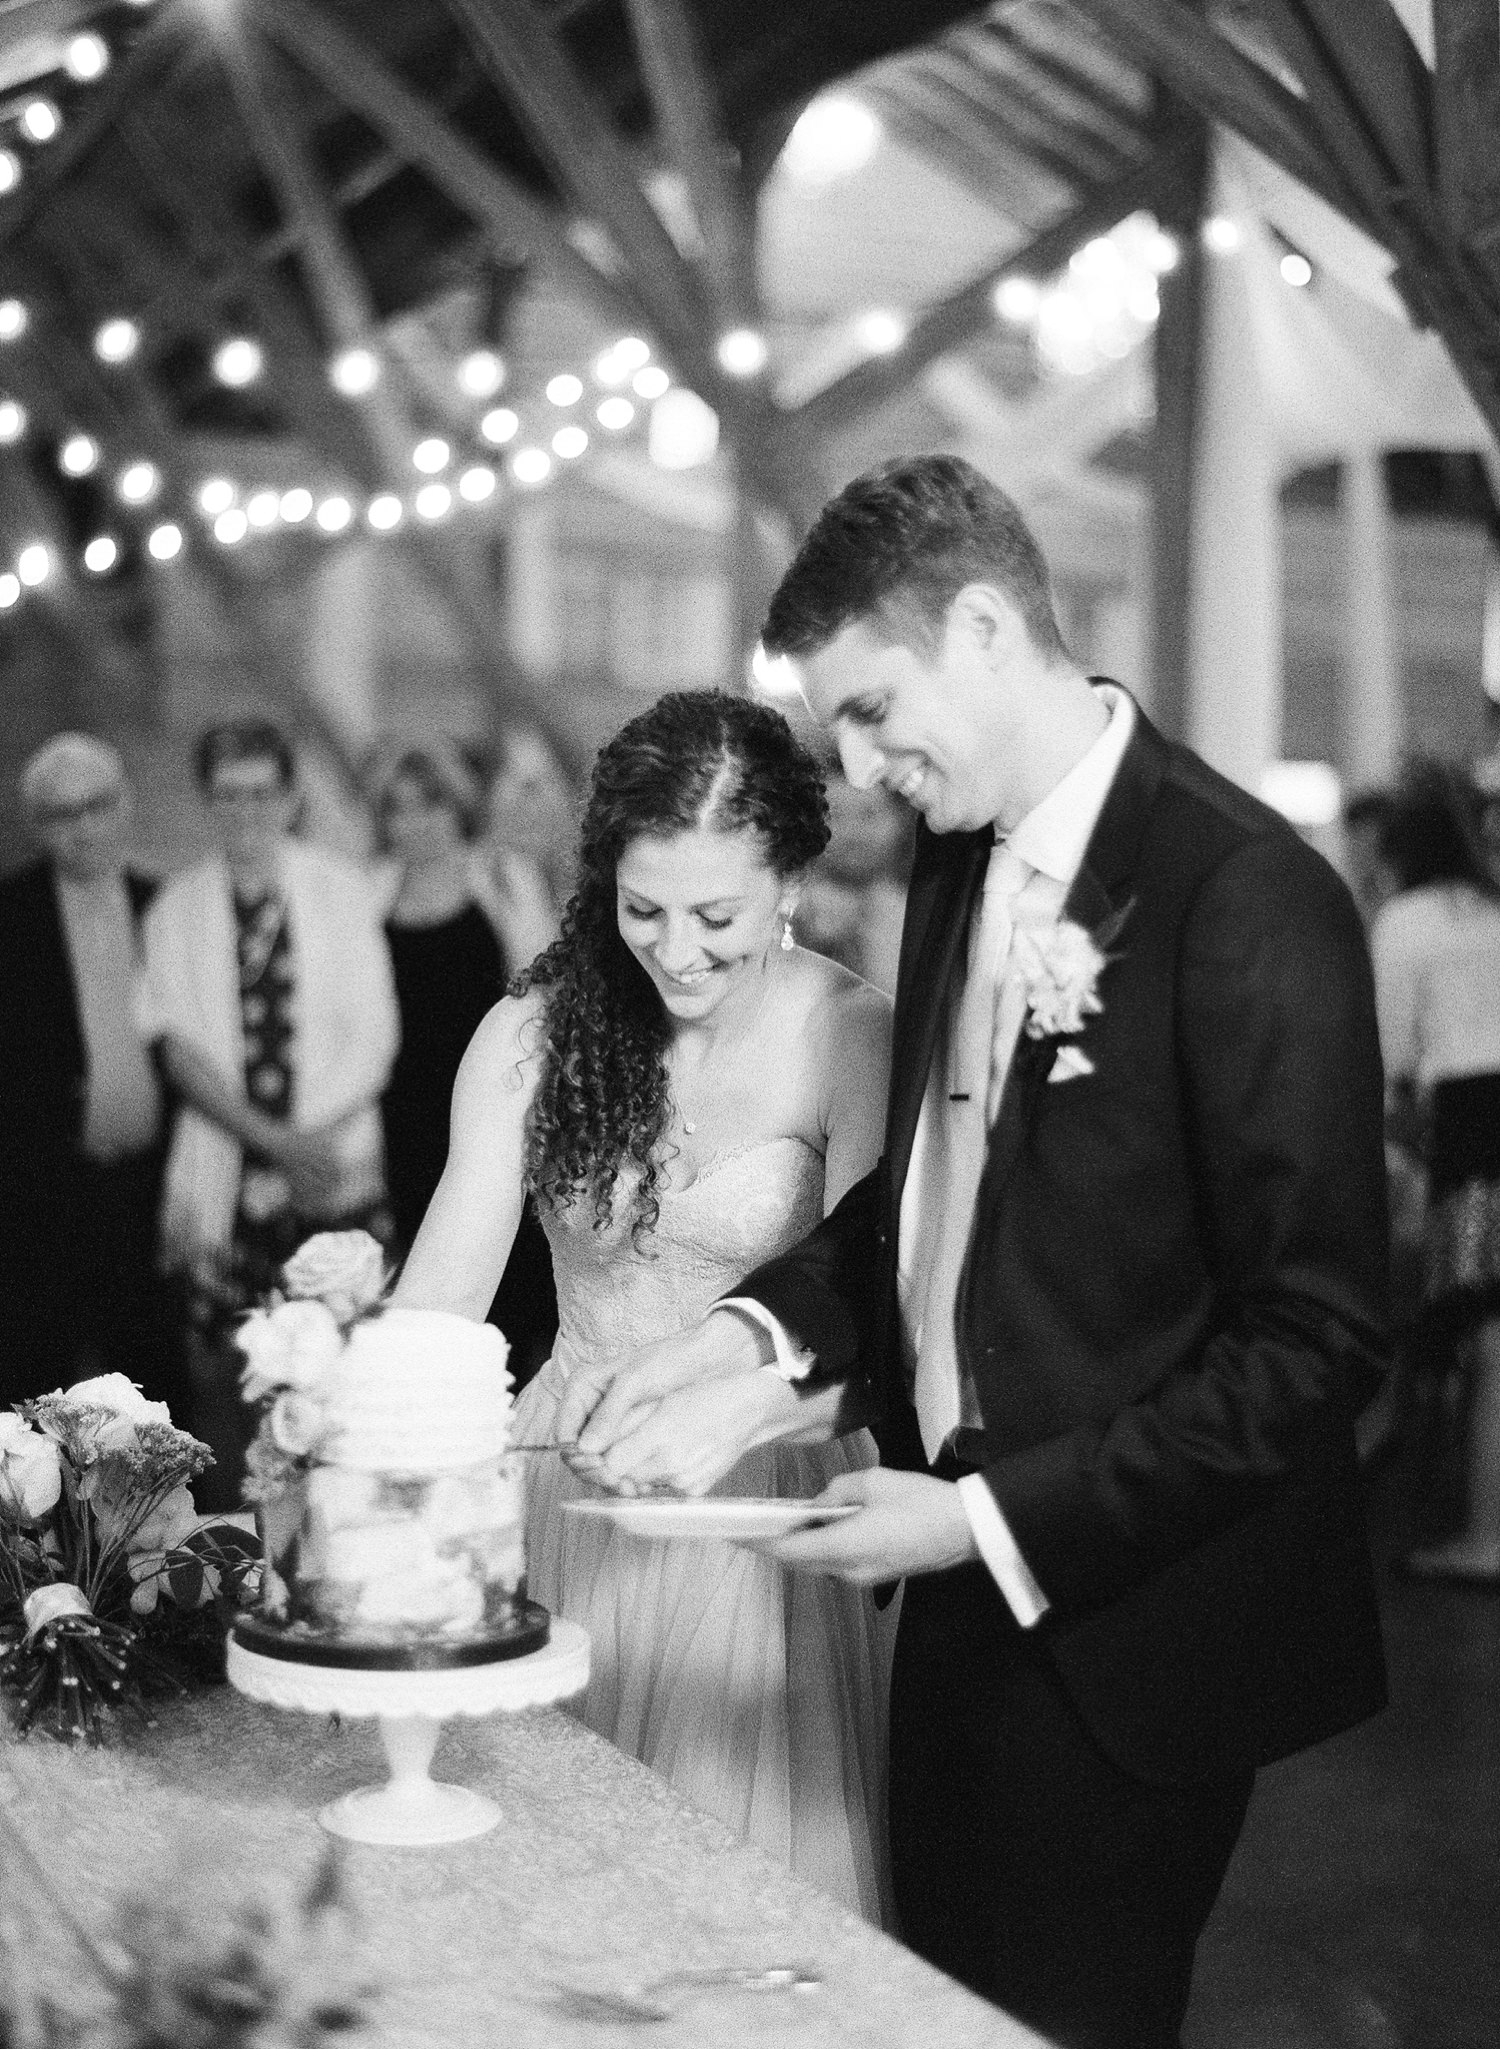 fine art film wedding photographer in charlottesville